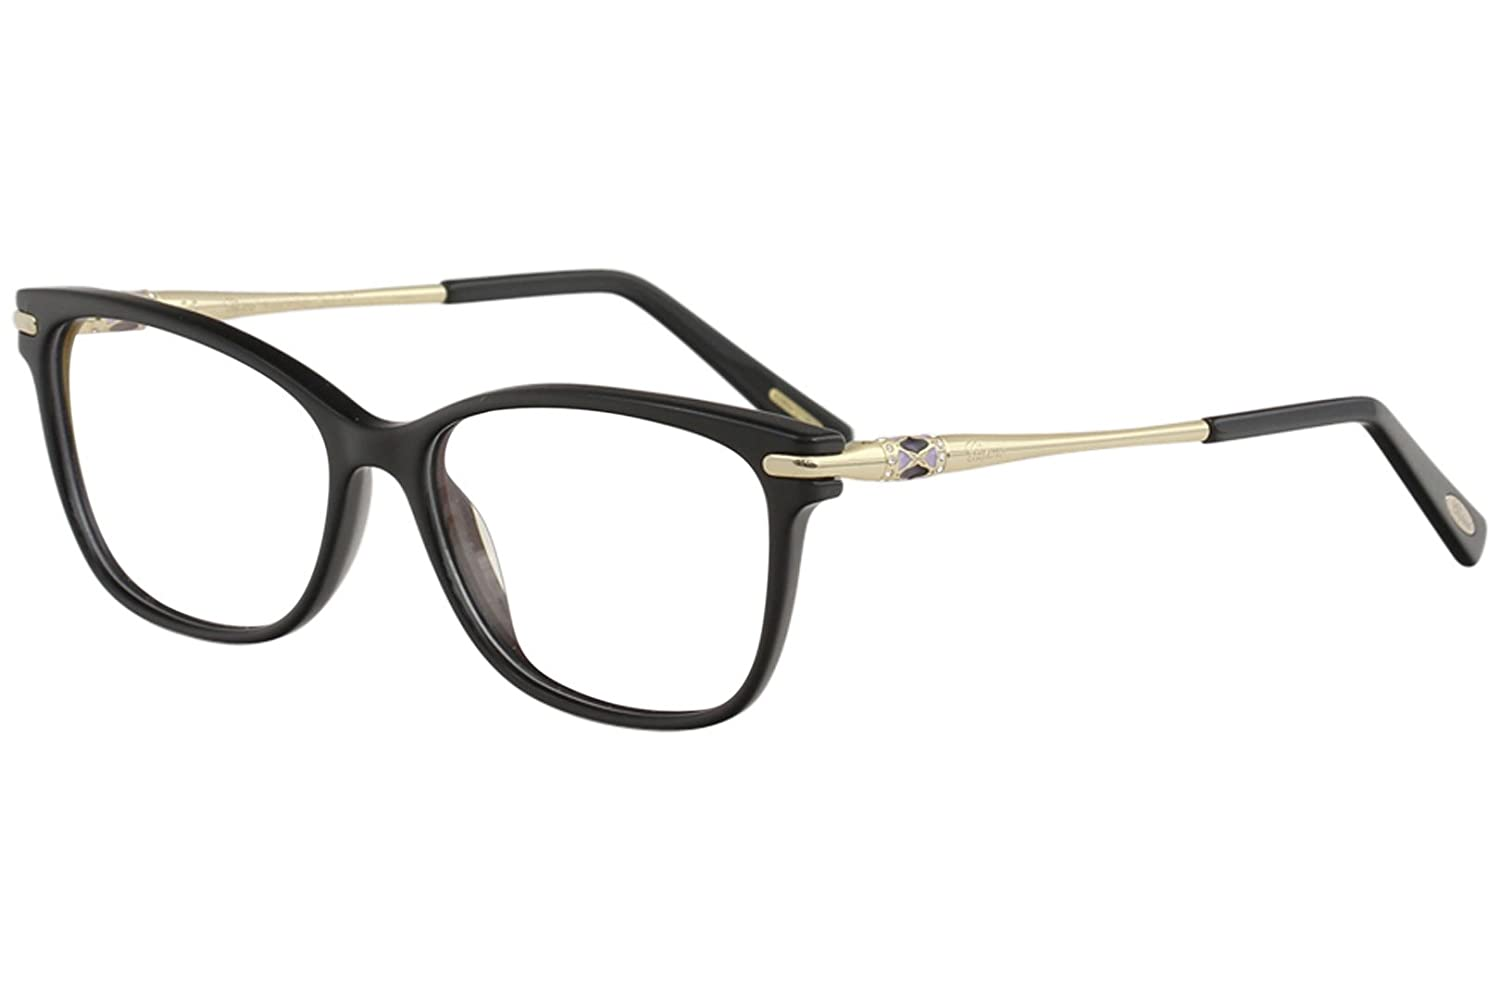 Eyeglasses Chopard VCH 215 S Shiny Black 700